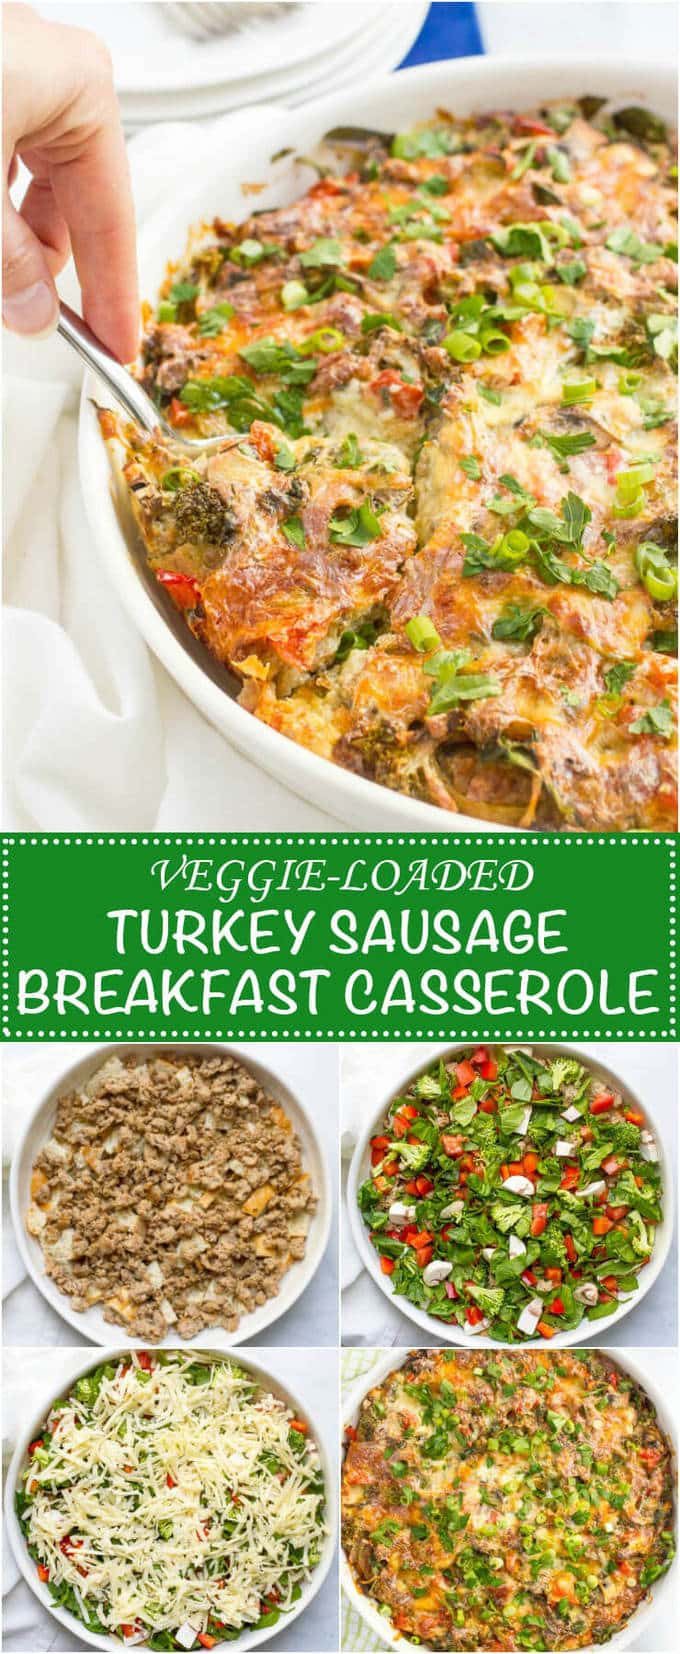 Healthy Breakfast Casserole With Sausage  Make ahead healthy sausage breakfast casserole Family